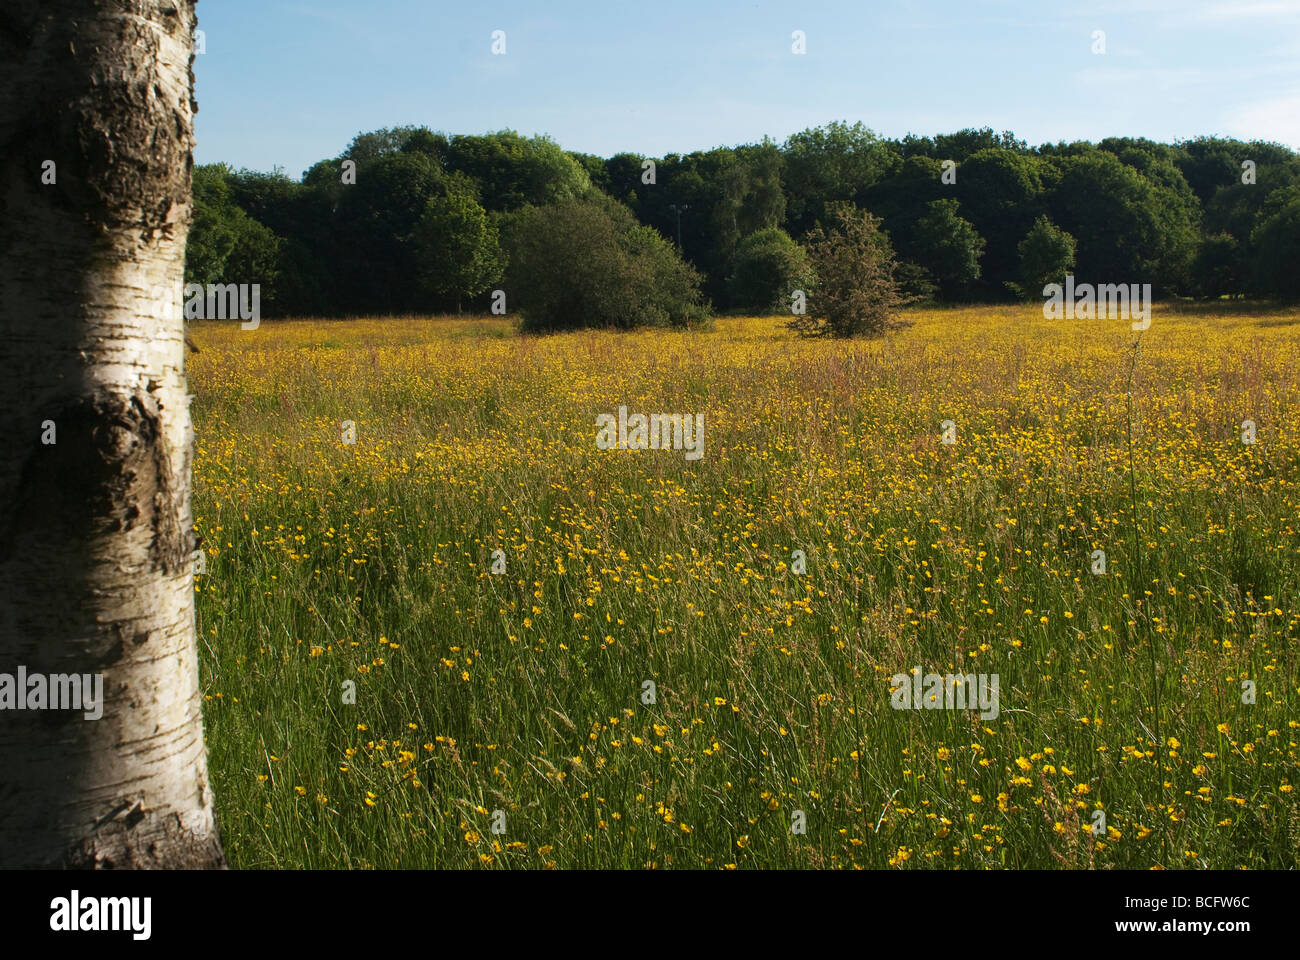 Pasture Field Wild Yellow Flowers Stock Photos Pasture Field Wild